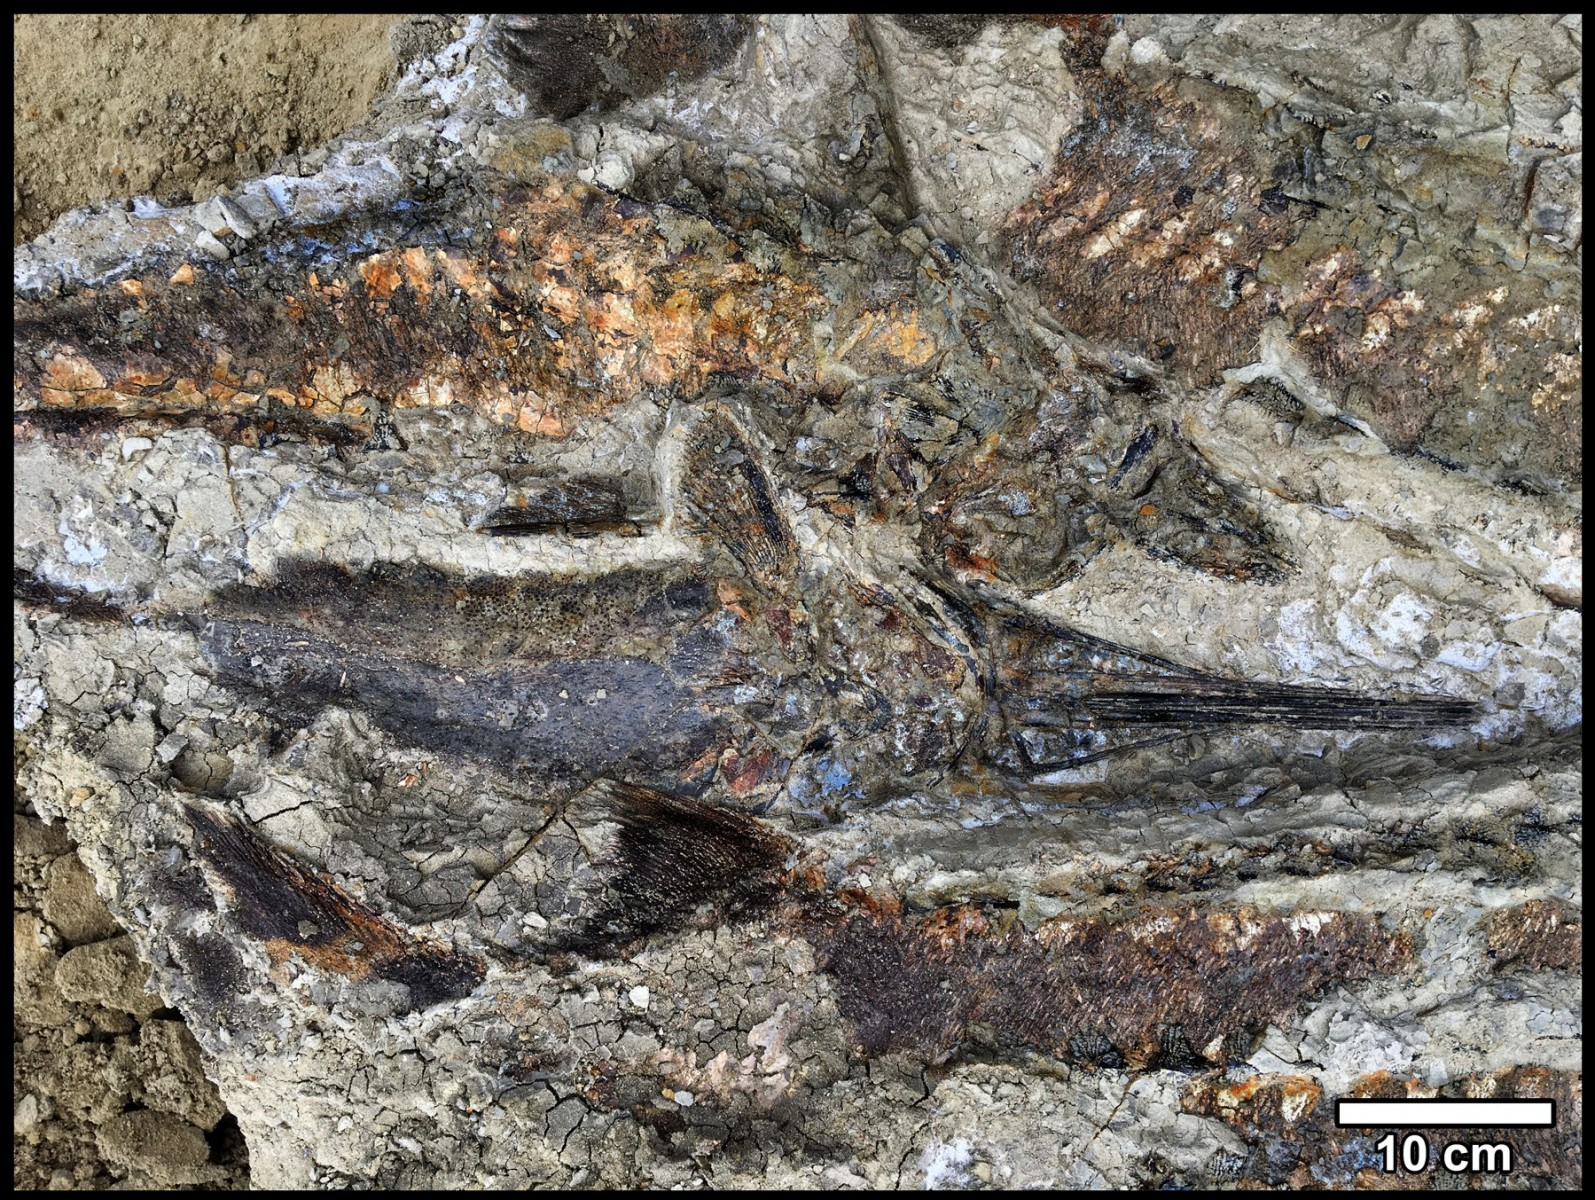 Intertangled mass of fossilised fish